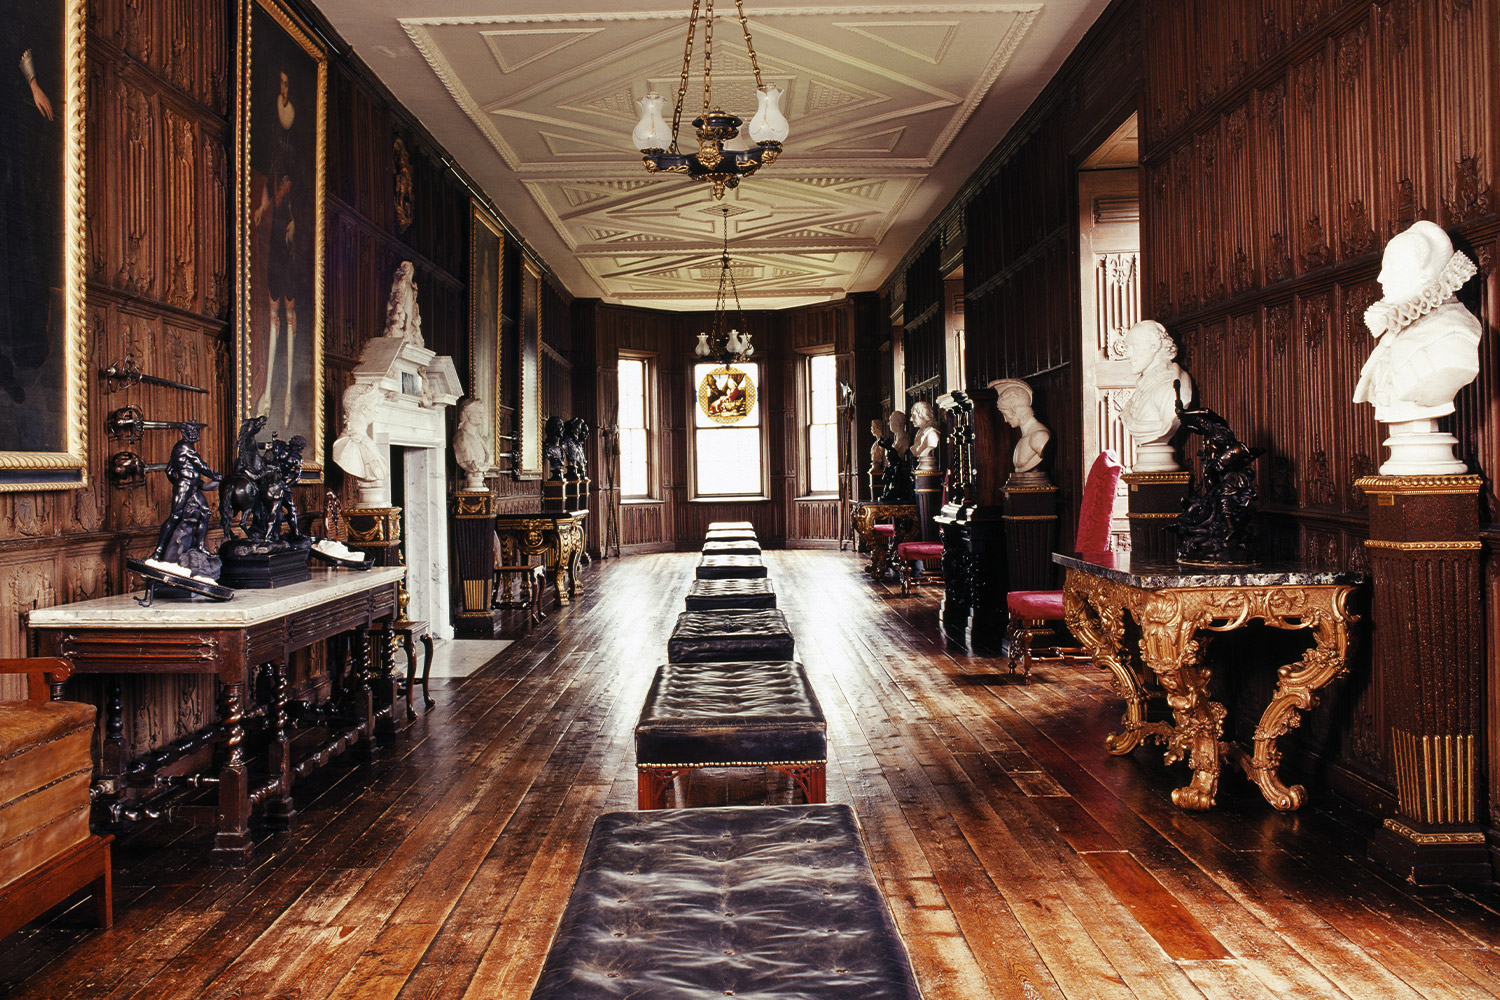 The Vyne, Basingstoke, England